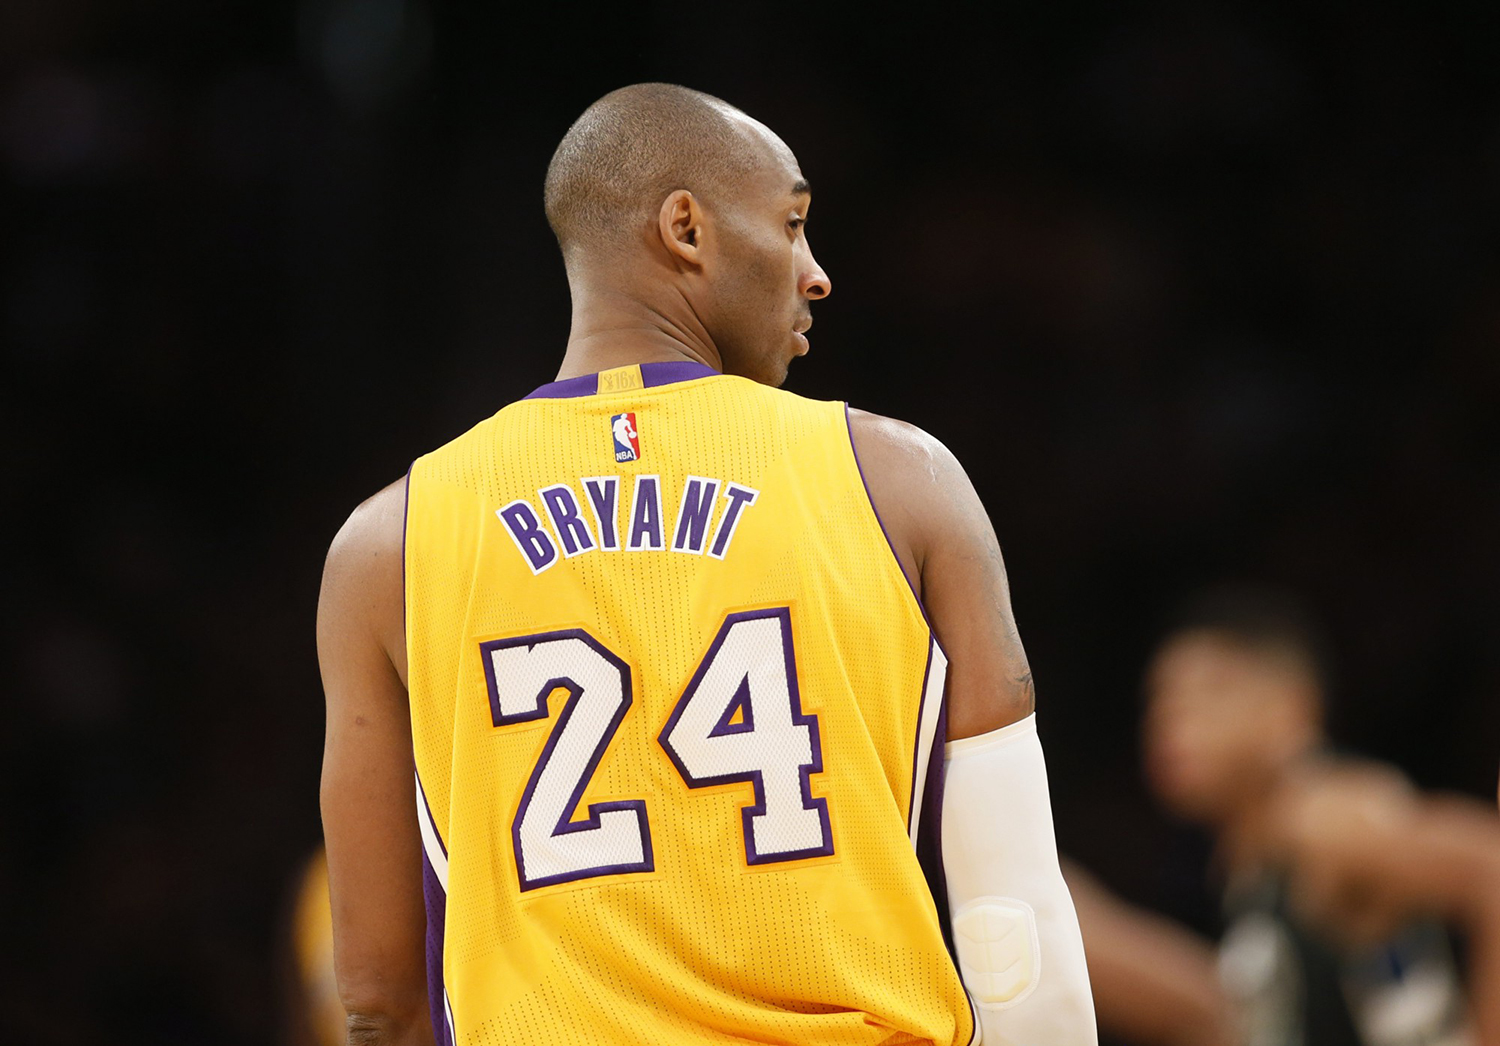 Kobe Bryant Net Worth 2018 - How Rich Is Kobe? - Gazette ...